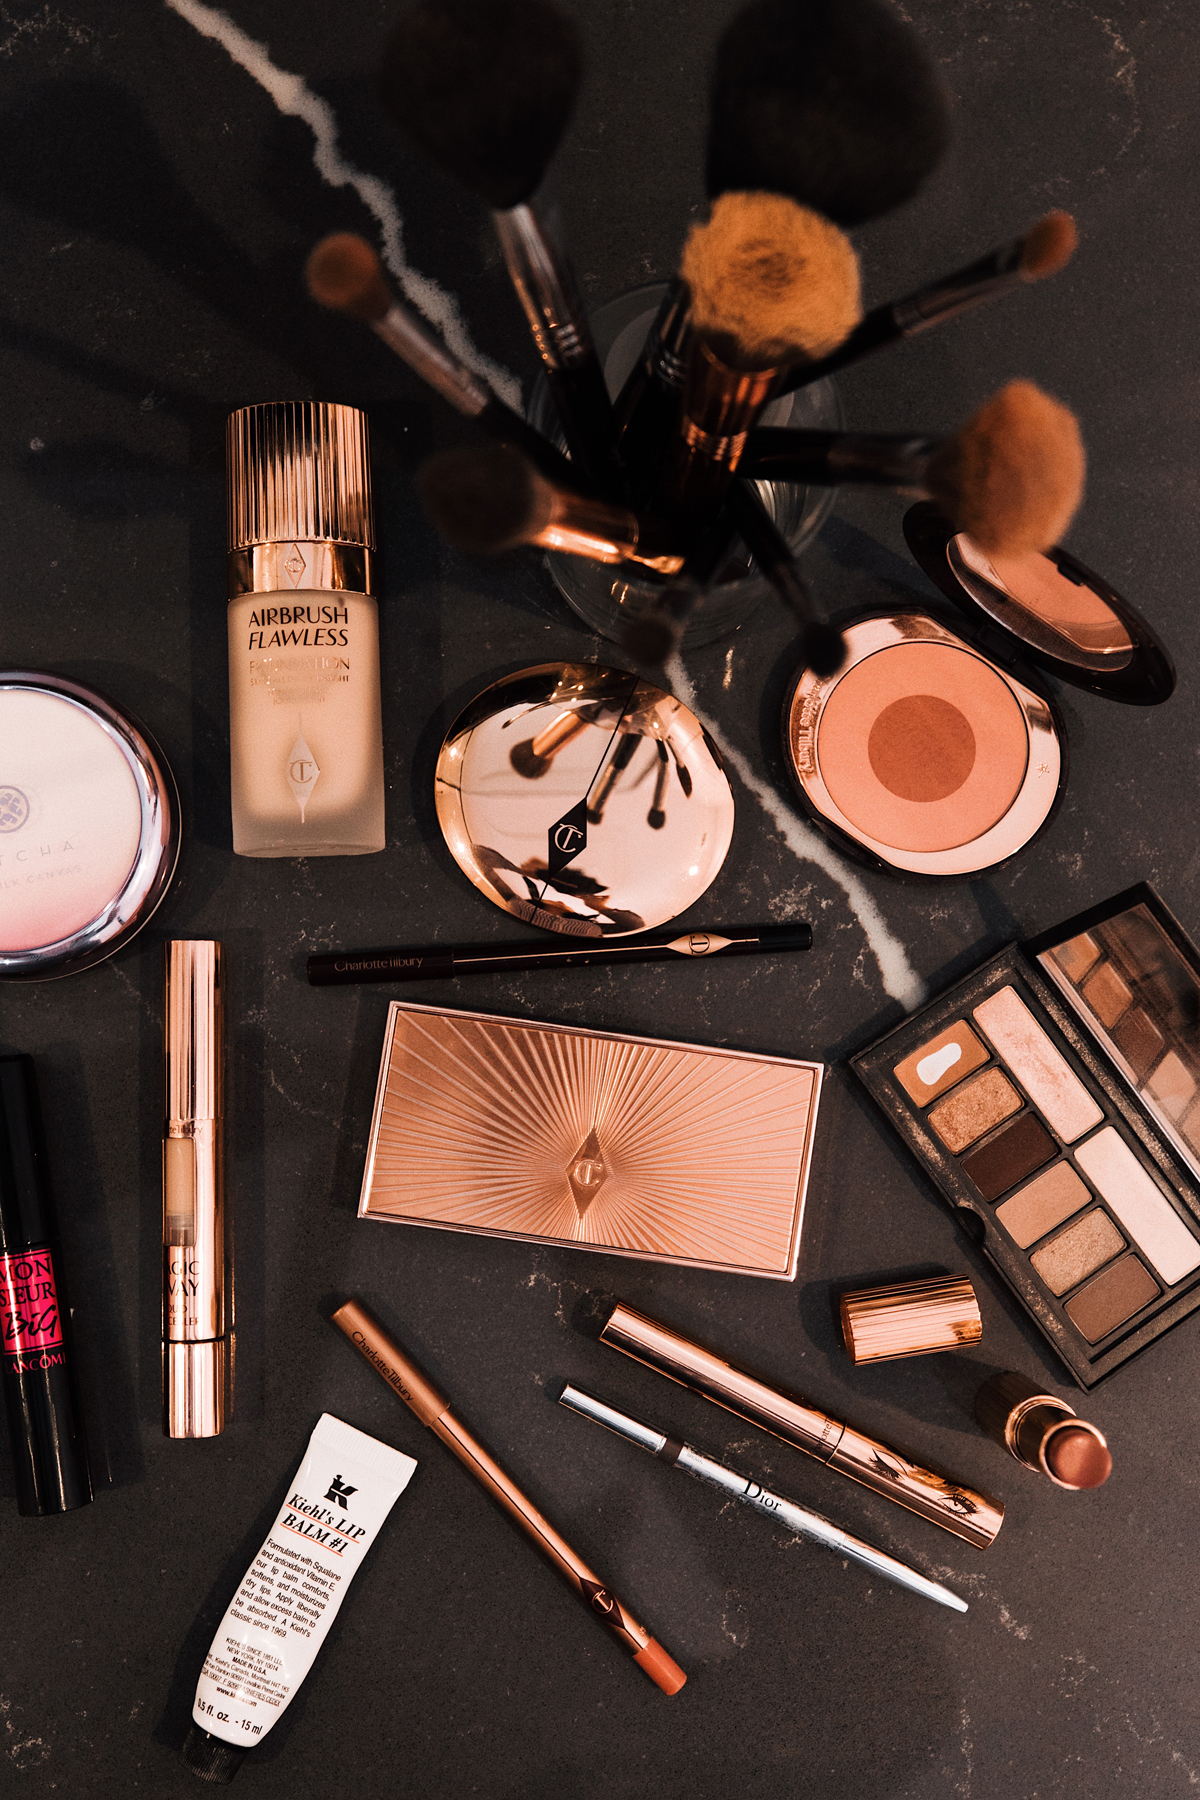 fashion jackson everyday makeup sephora holiday beauty event 2019 charlotte tilbury makeup